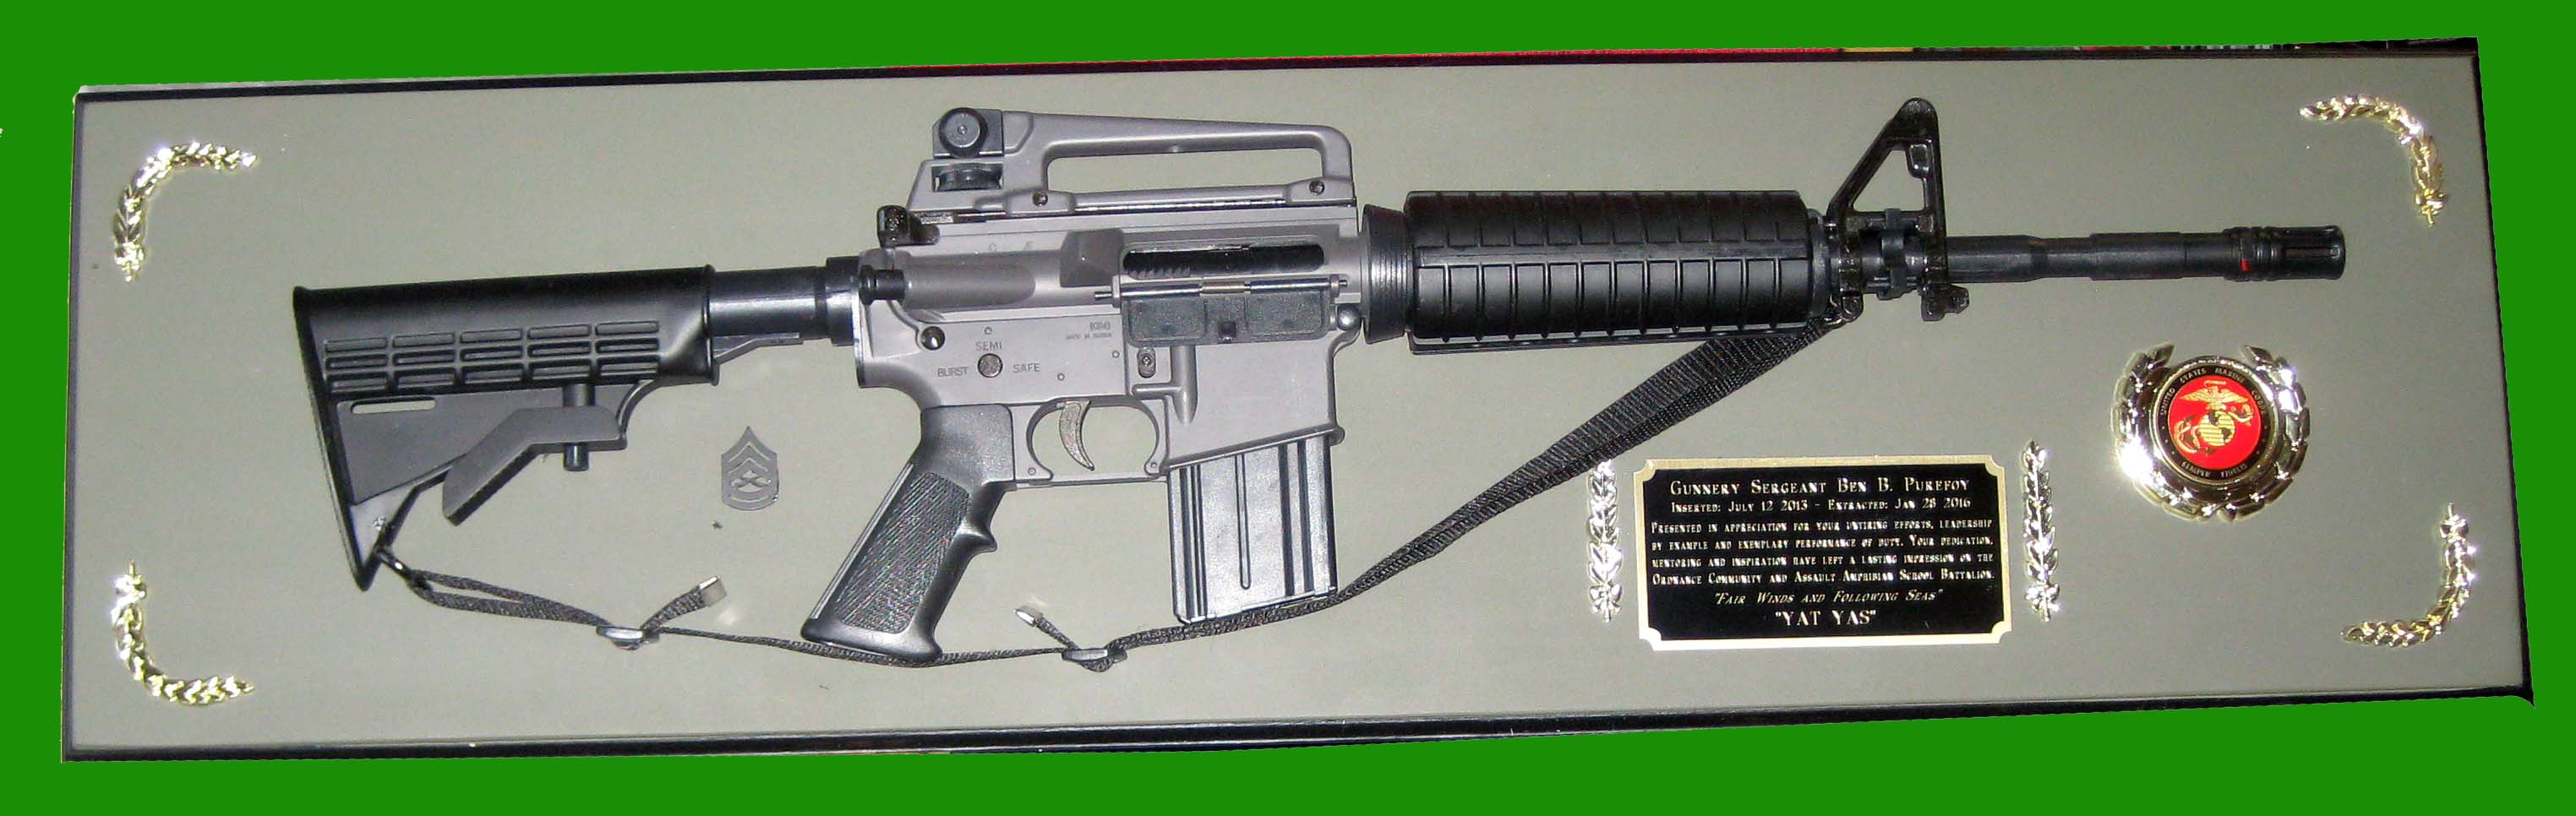 Award M4 rilfe full saize on wood board -- wall mount - Click Image to Close